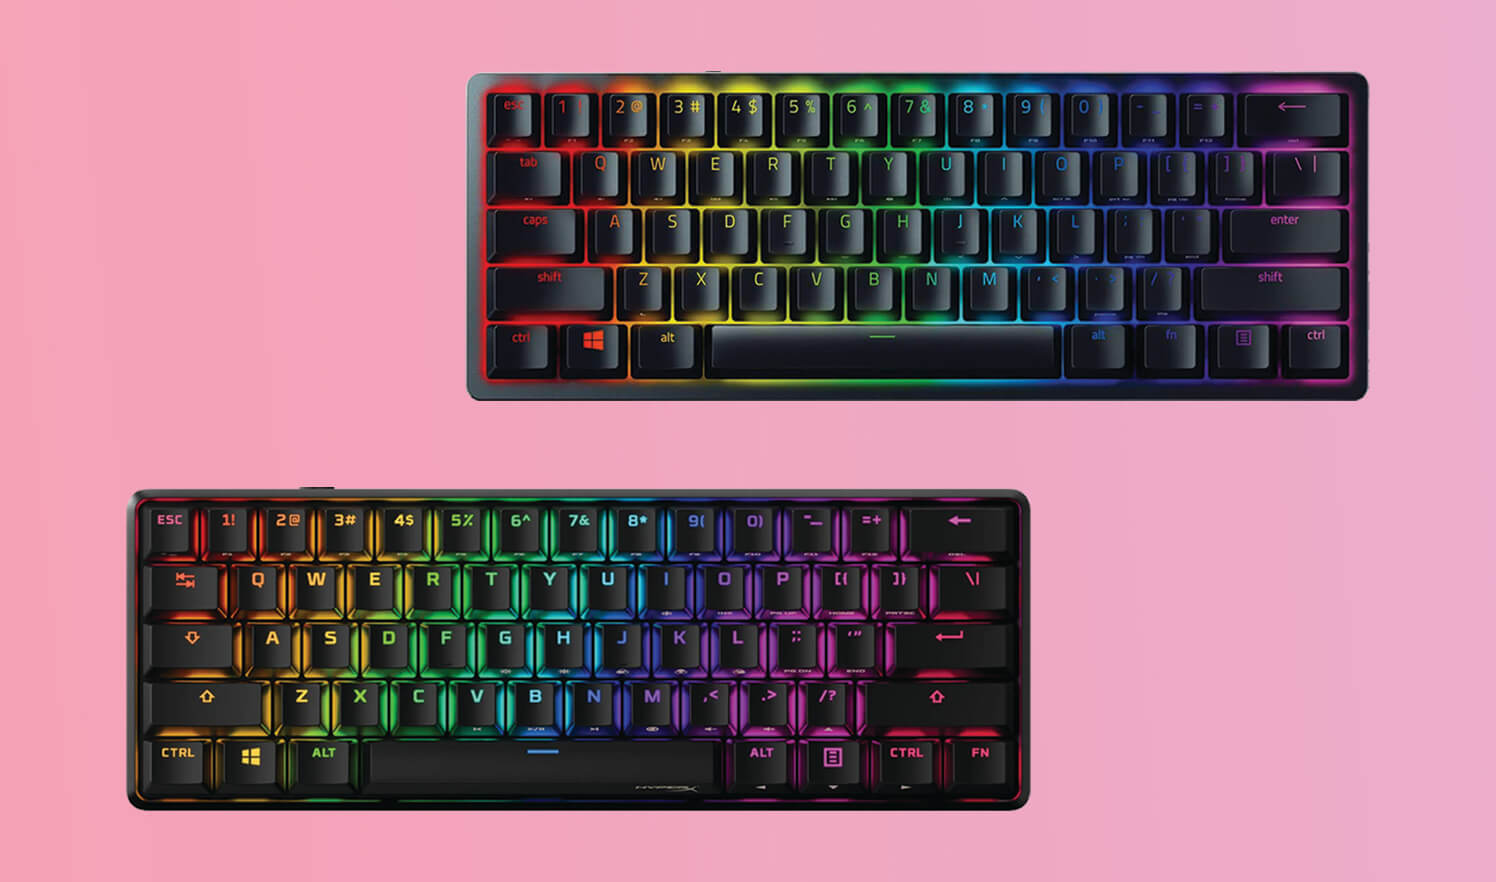 Best 60% Keyboards for Gaming